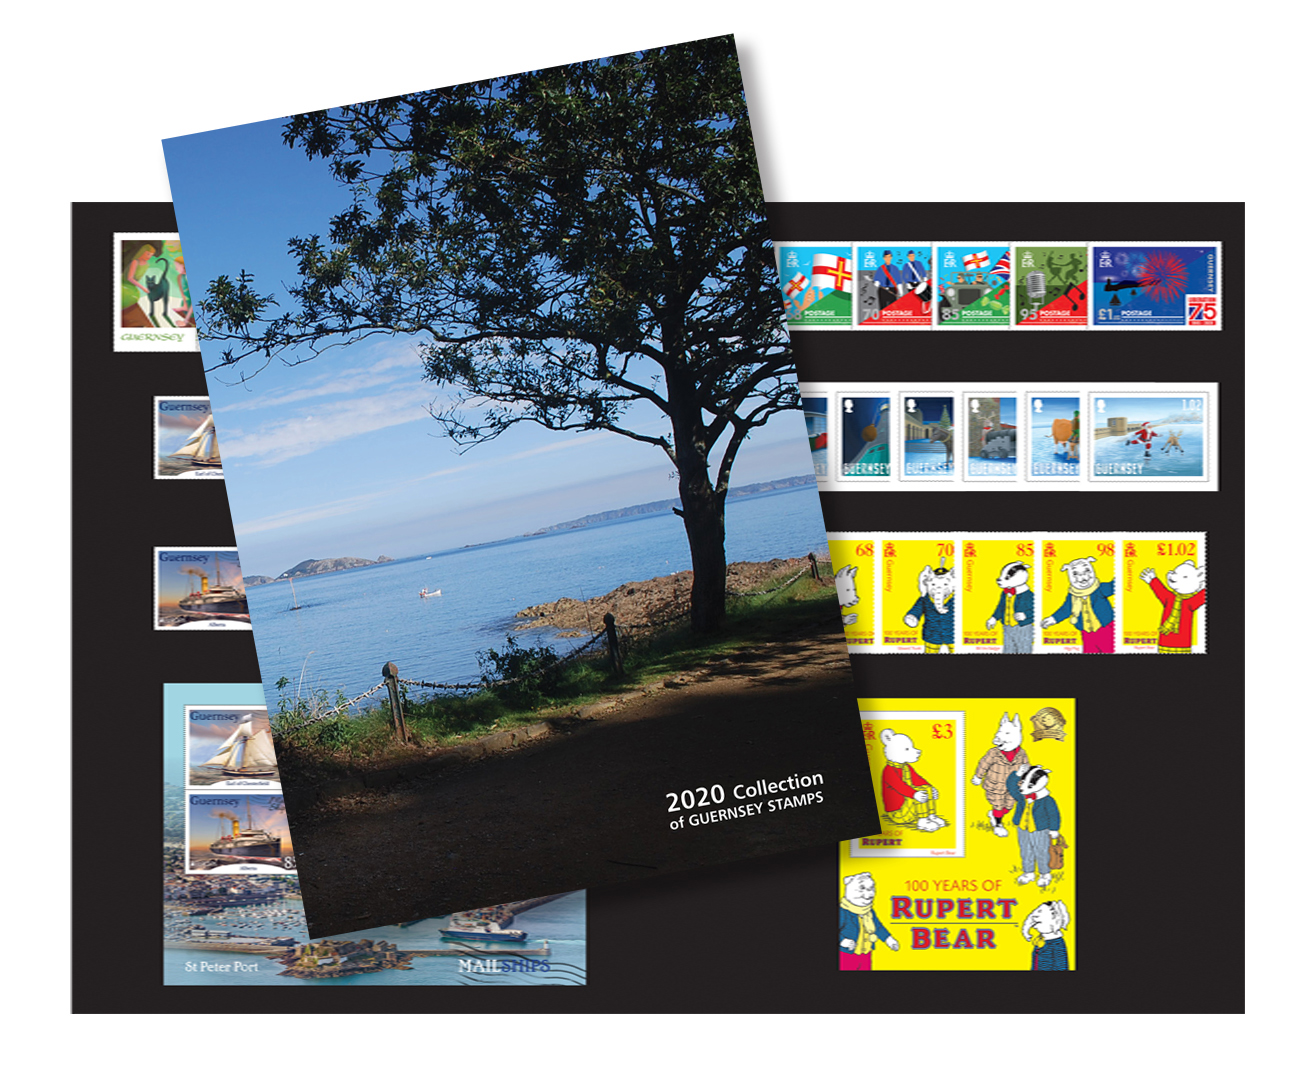 Guernsey Post launches Year Set Folders to celebrate this year's stamps